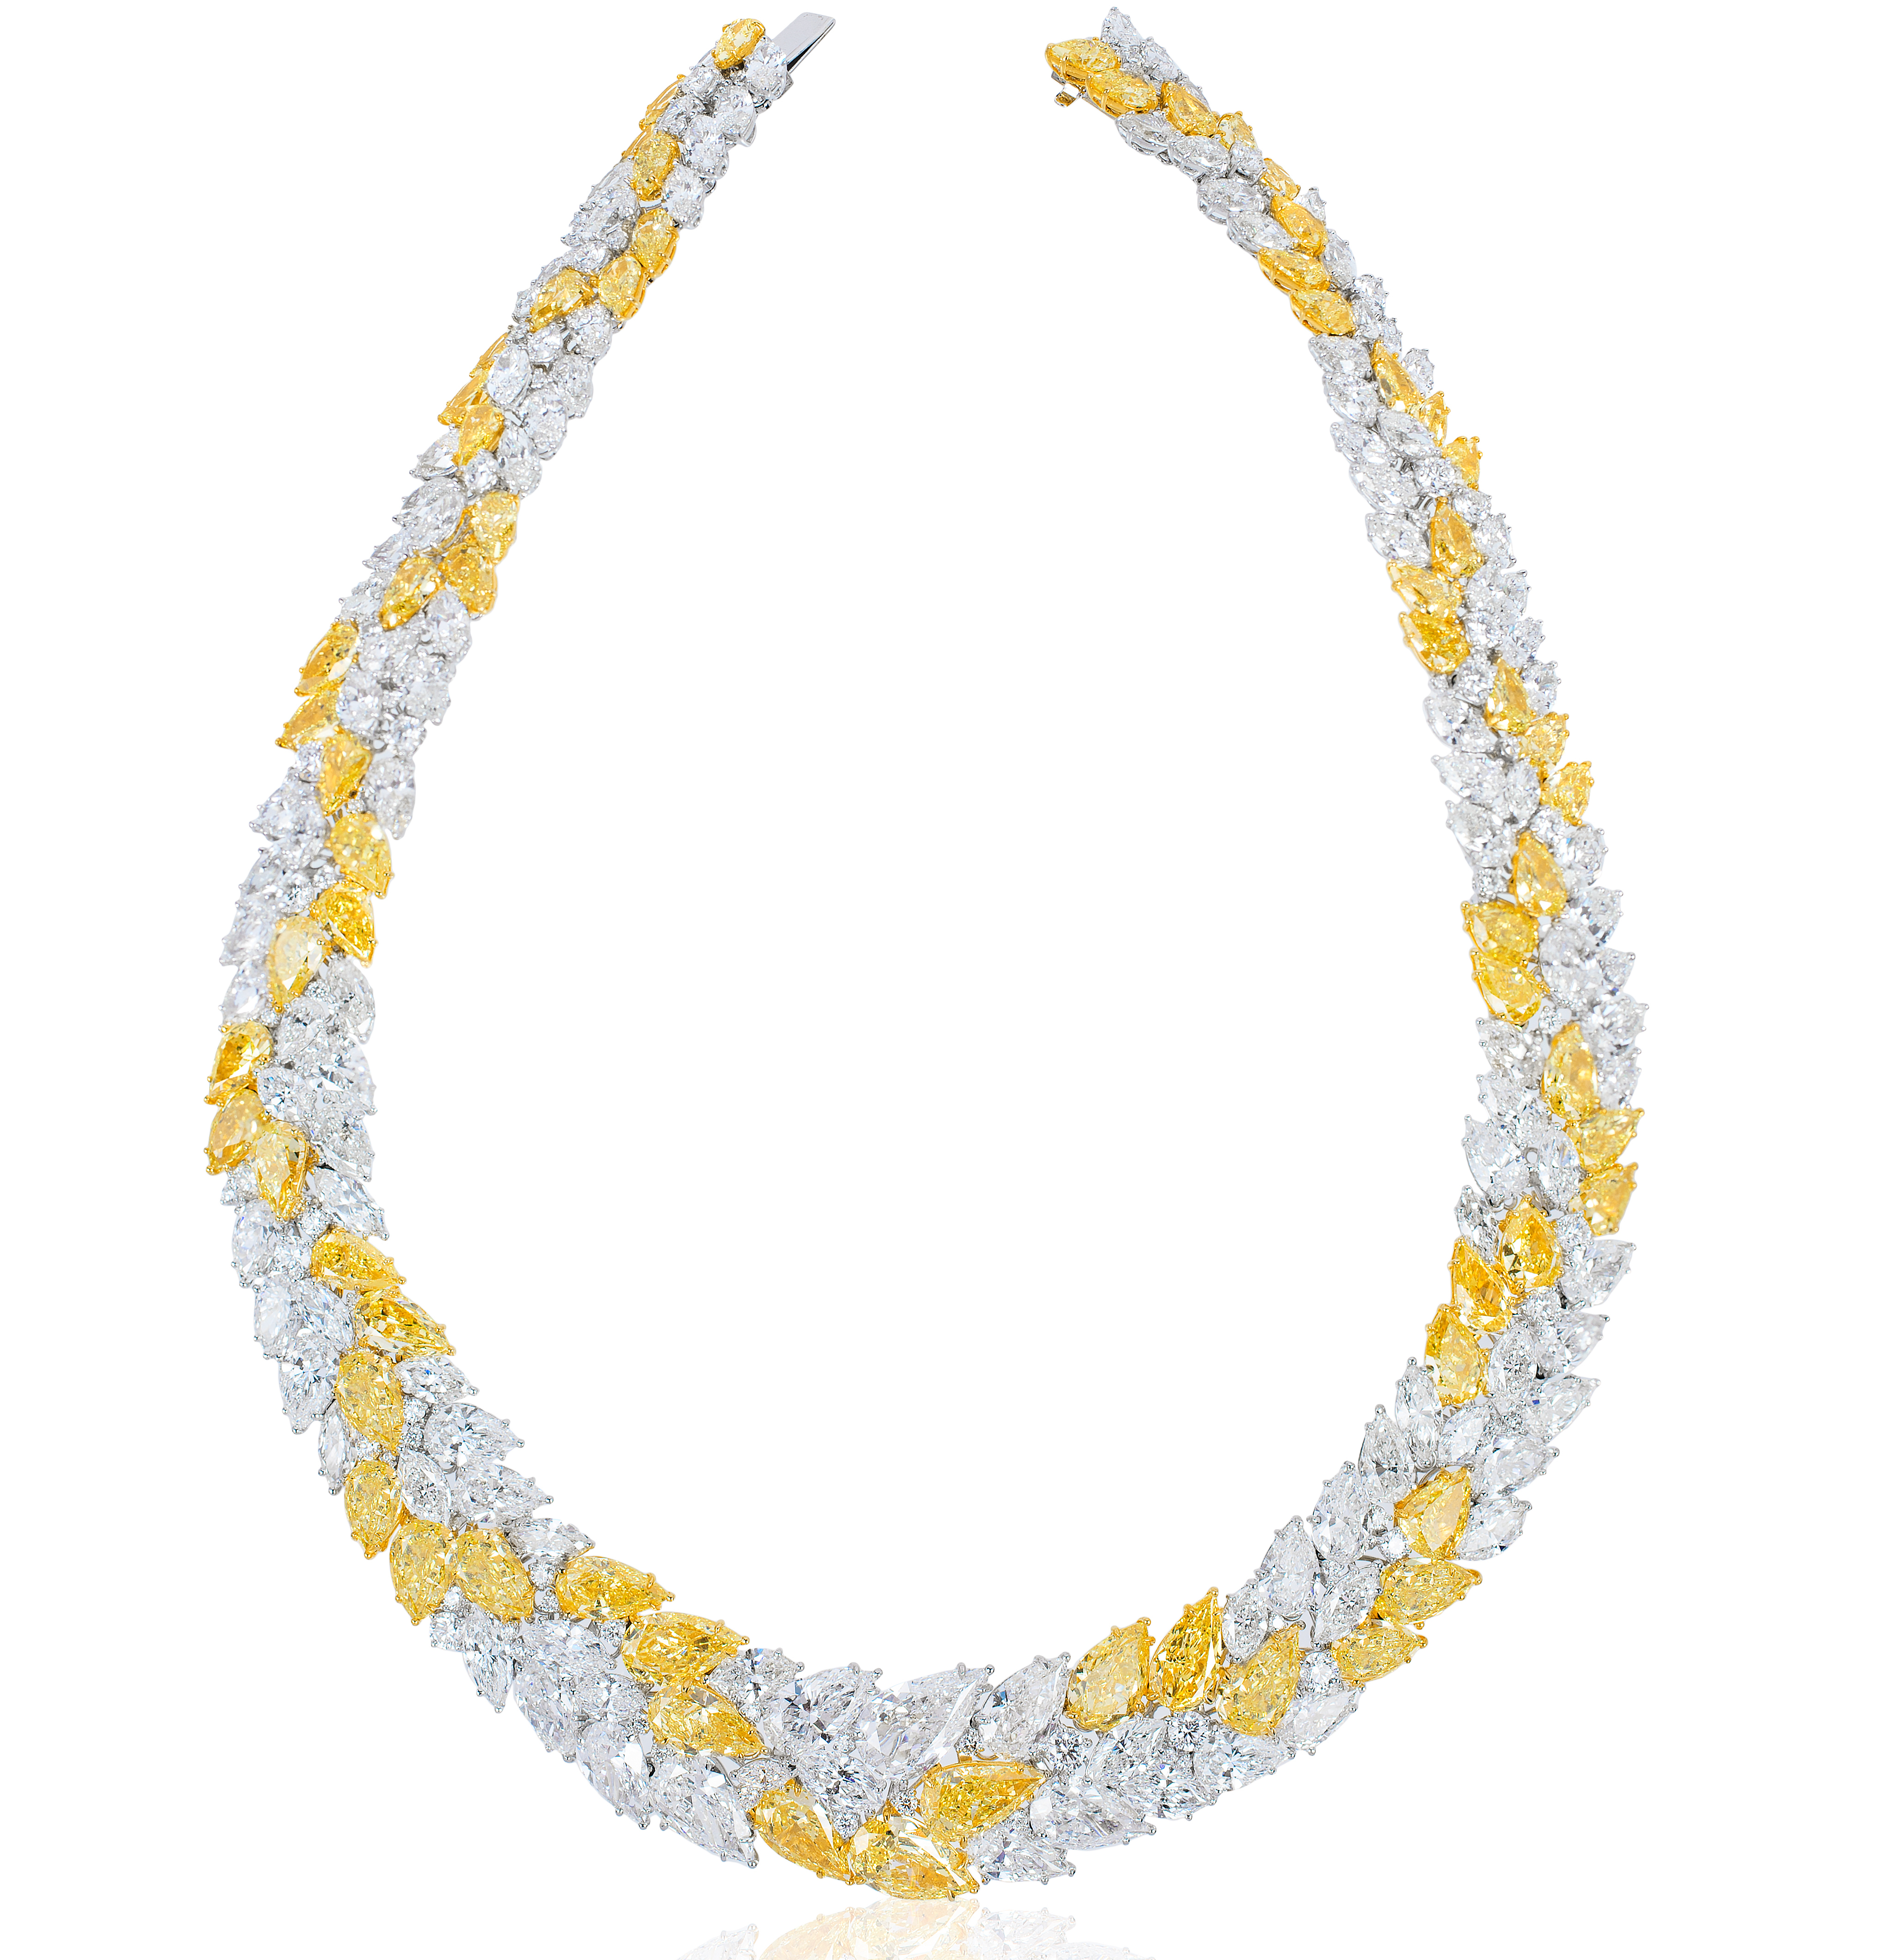 David Mor yellow and white diamond necklace #BRITTSPICK | JCK On Your Market